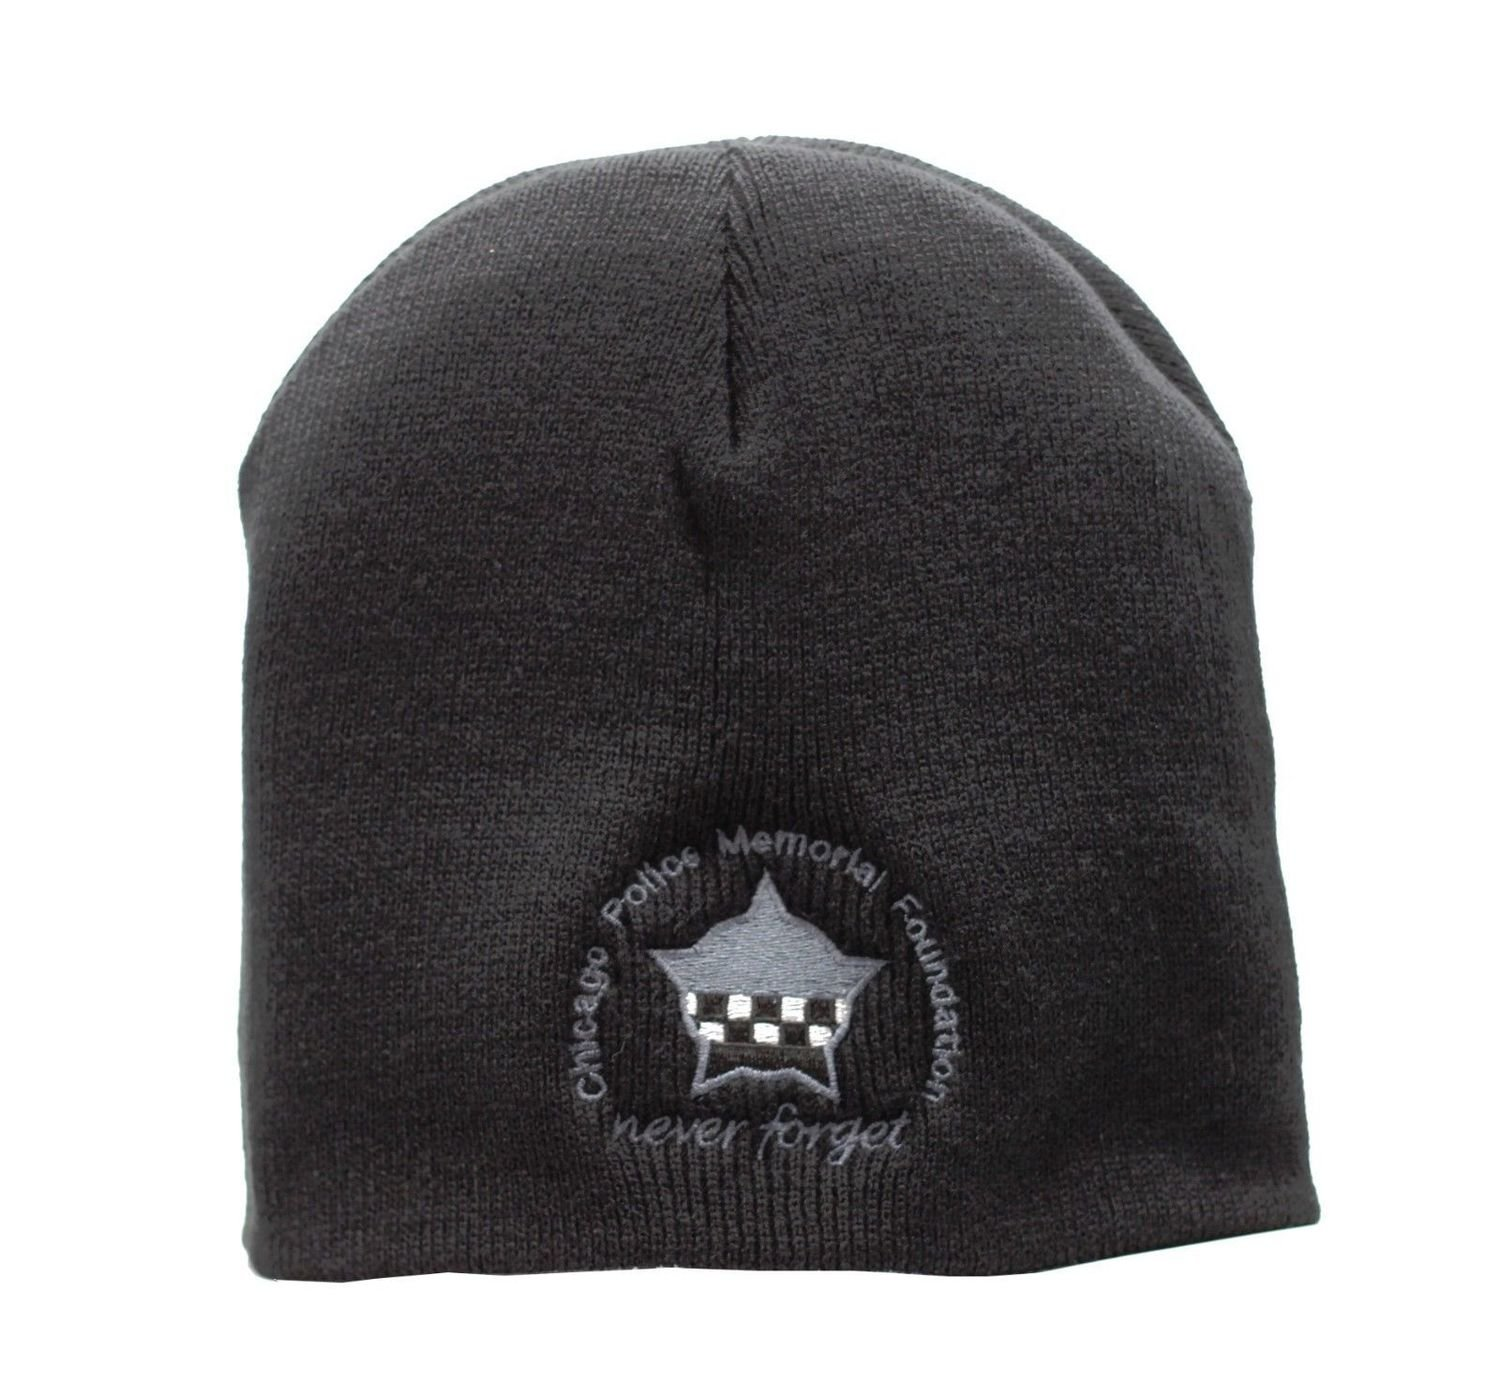 Chicago Police Memorial Sub-dued Black Skull Knit Cap